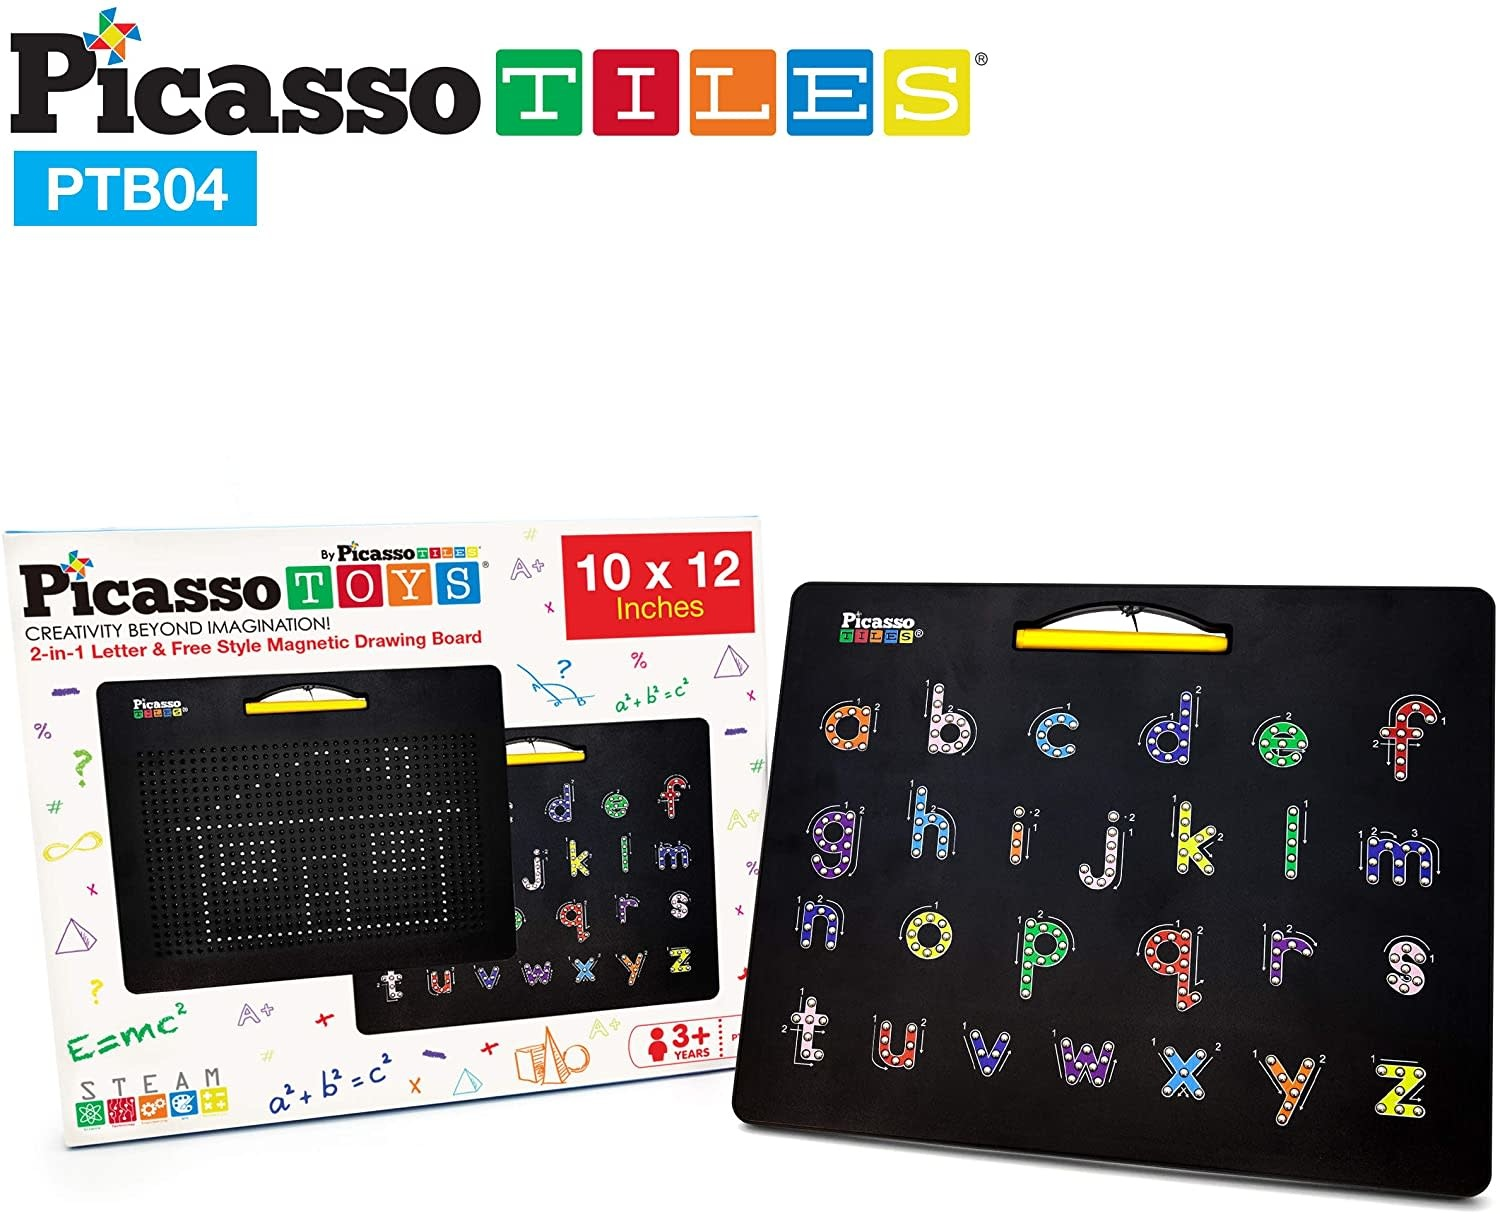 Magnetic 2-in-1 Drawing Board by Picasso Tiles